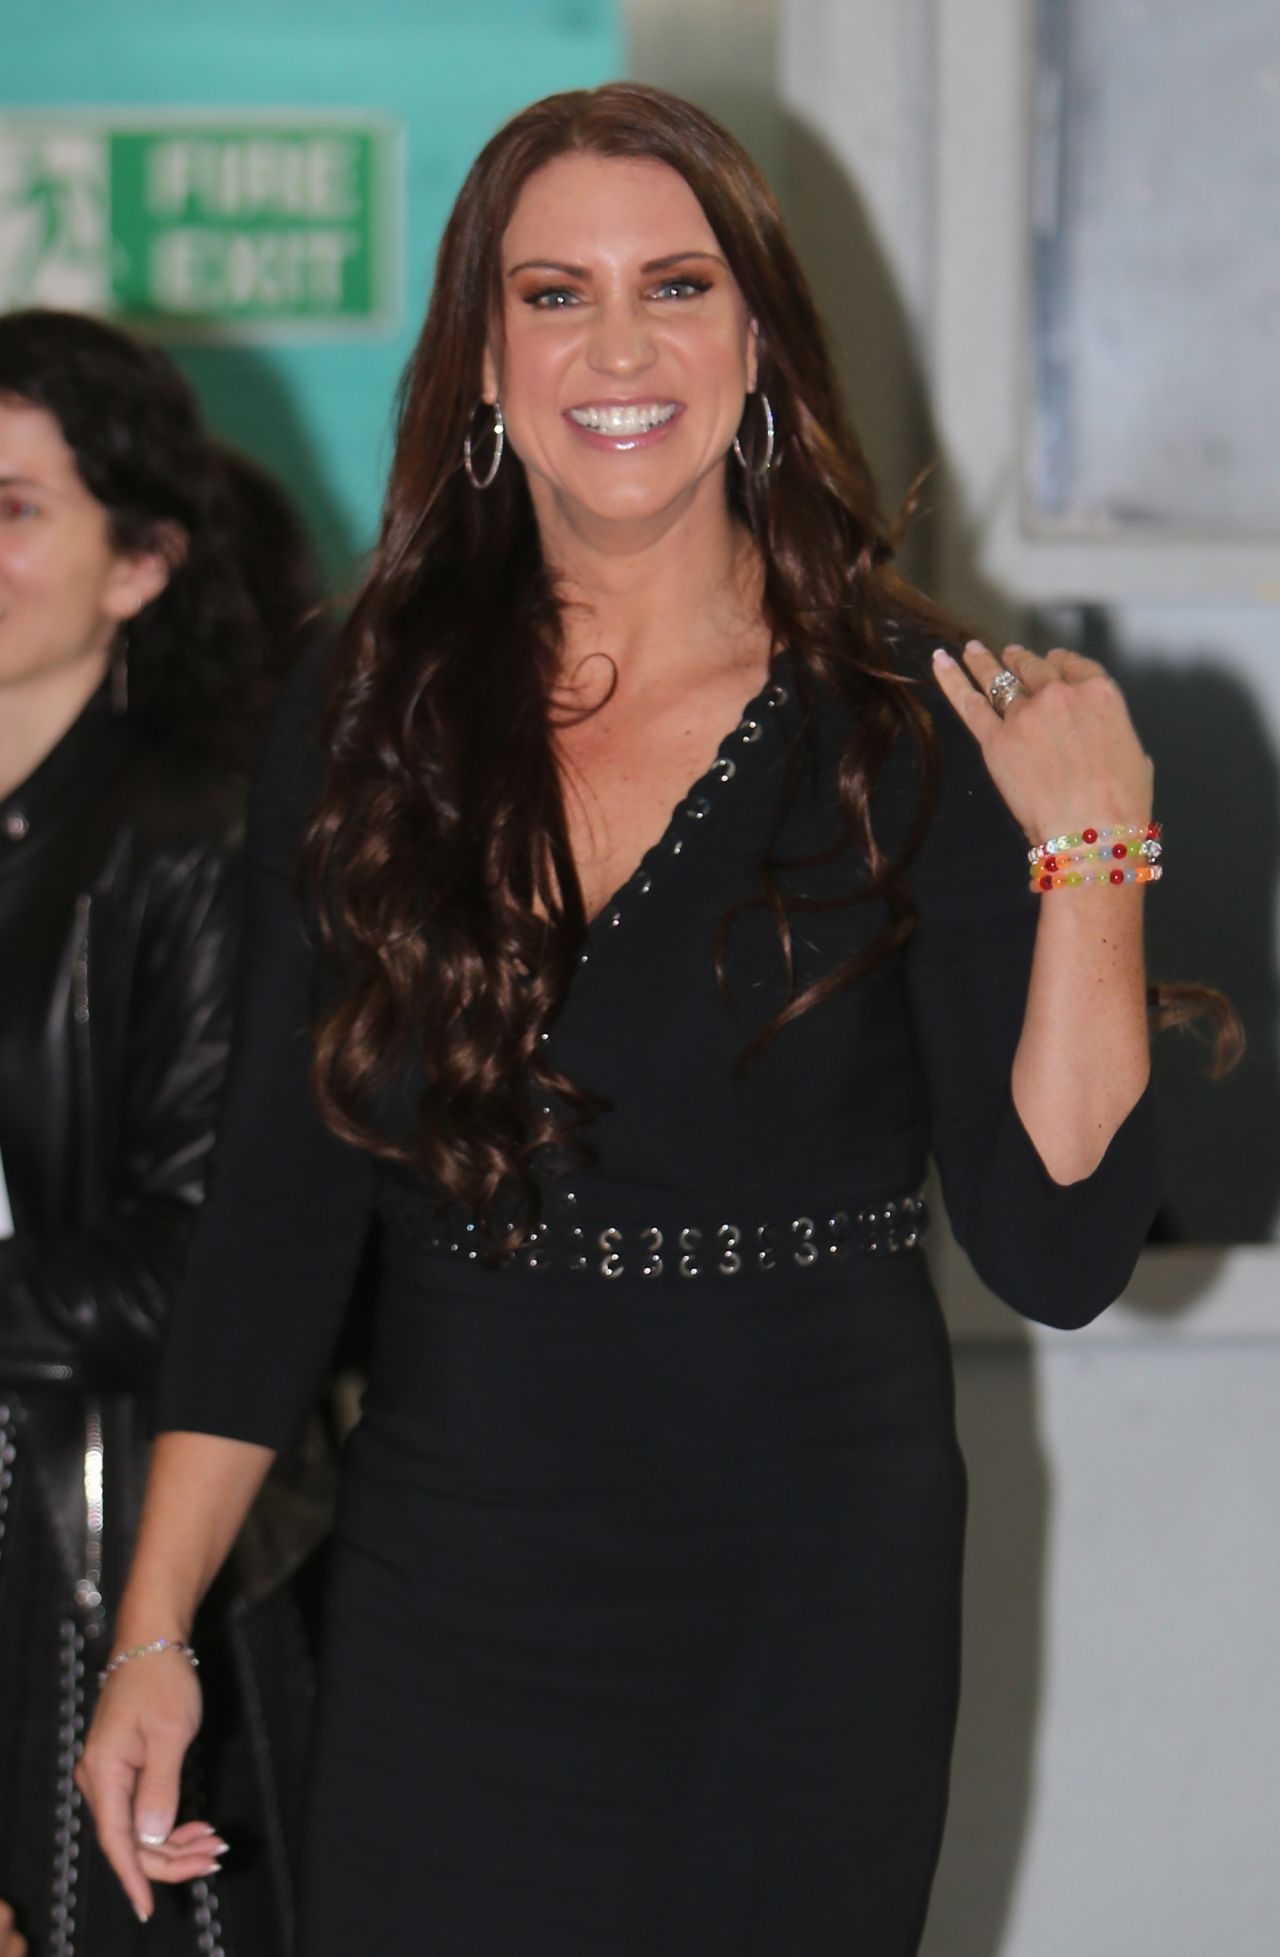 Stephanie Mcmahon Look Alike